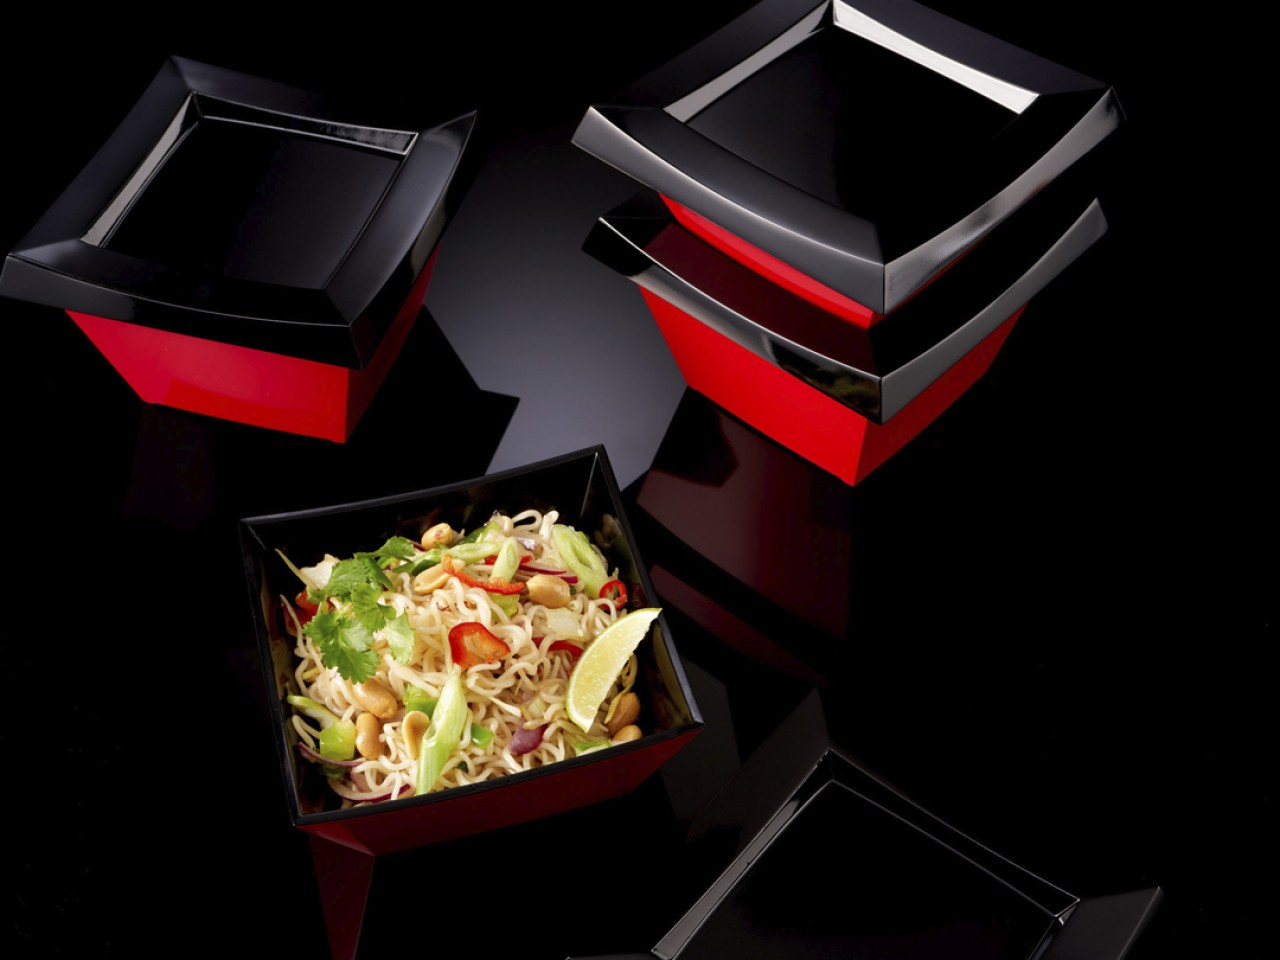 Take Back - Designing a returnable and reusable takeaway packaging innovation concept.